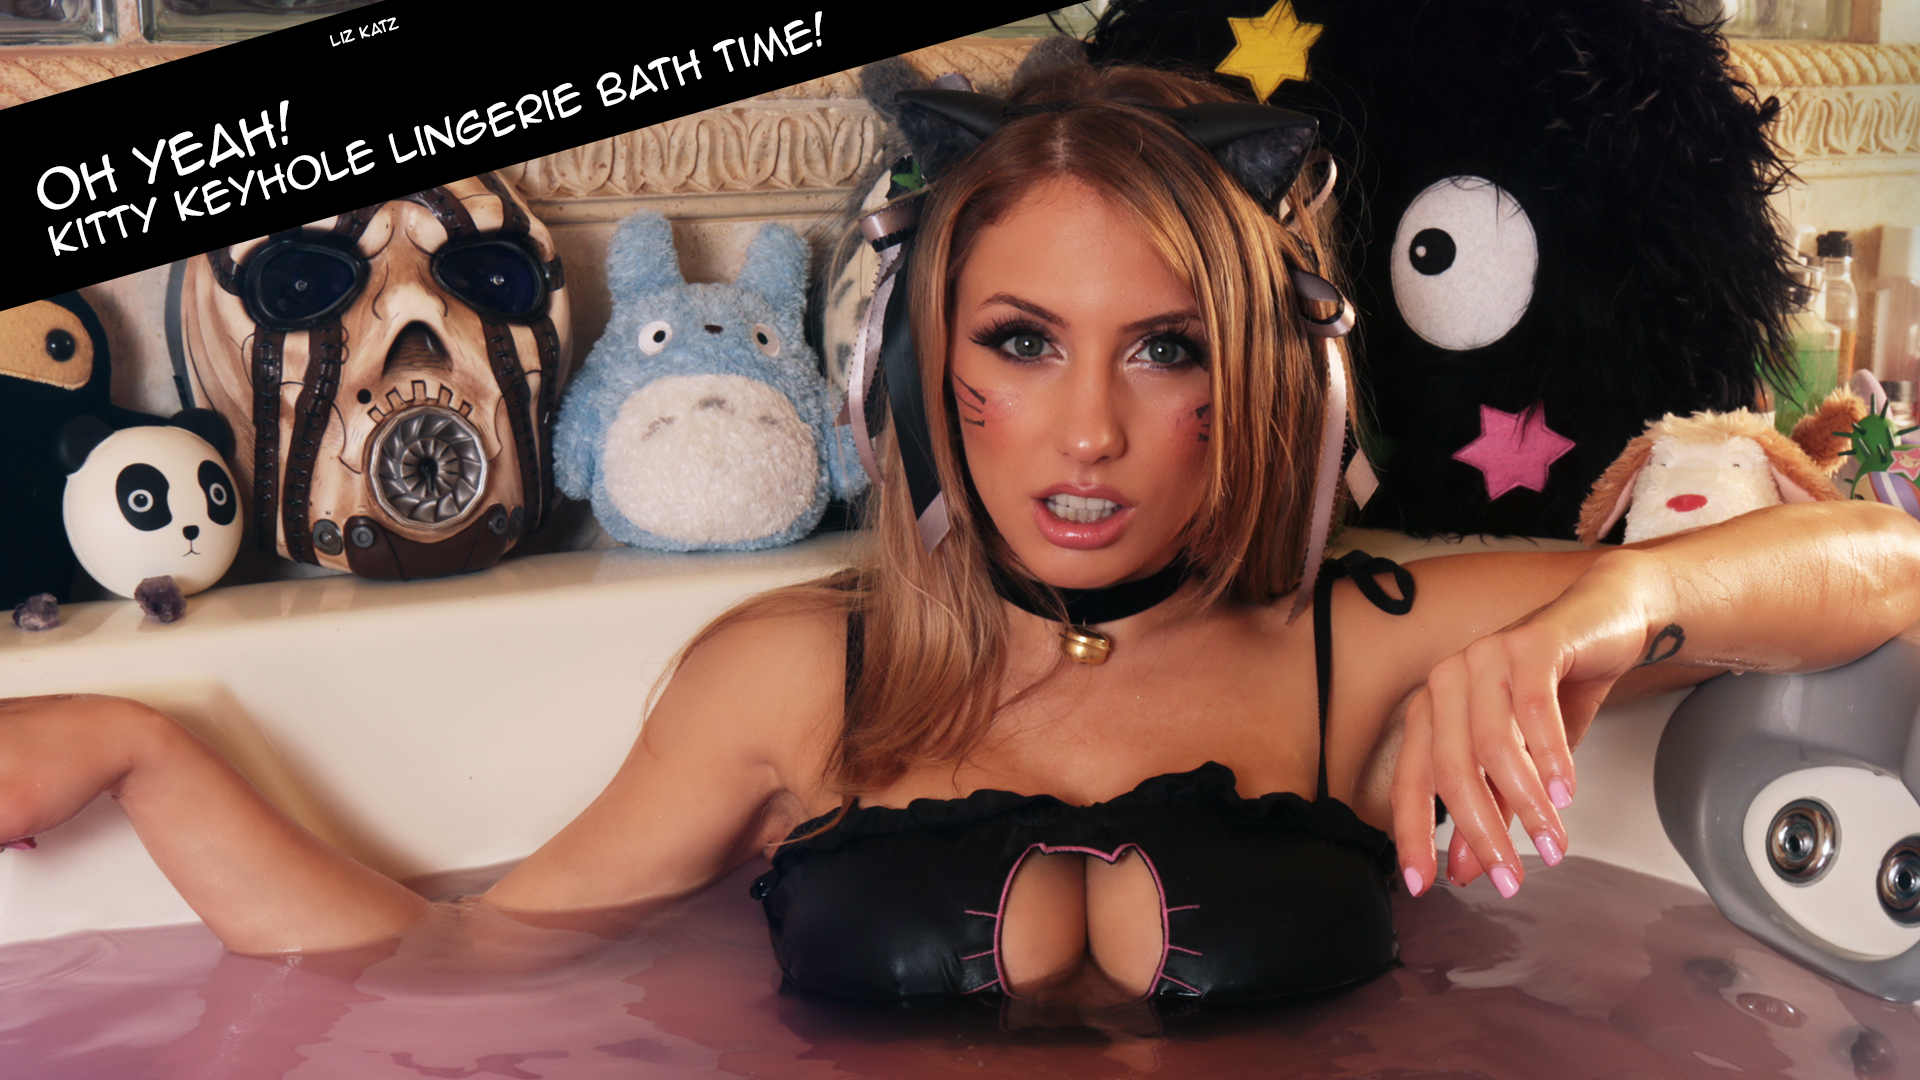 Liz Katz in here kitty keyhole bra top